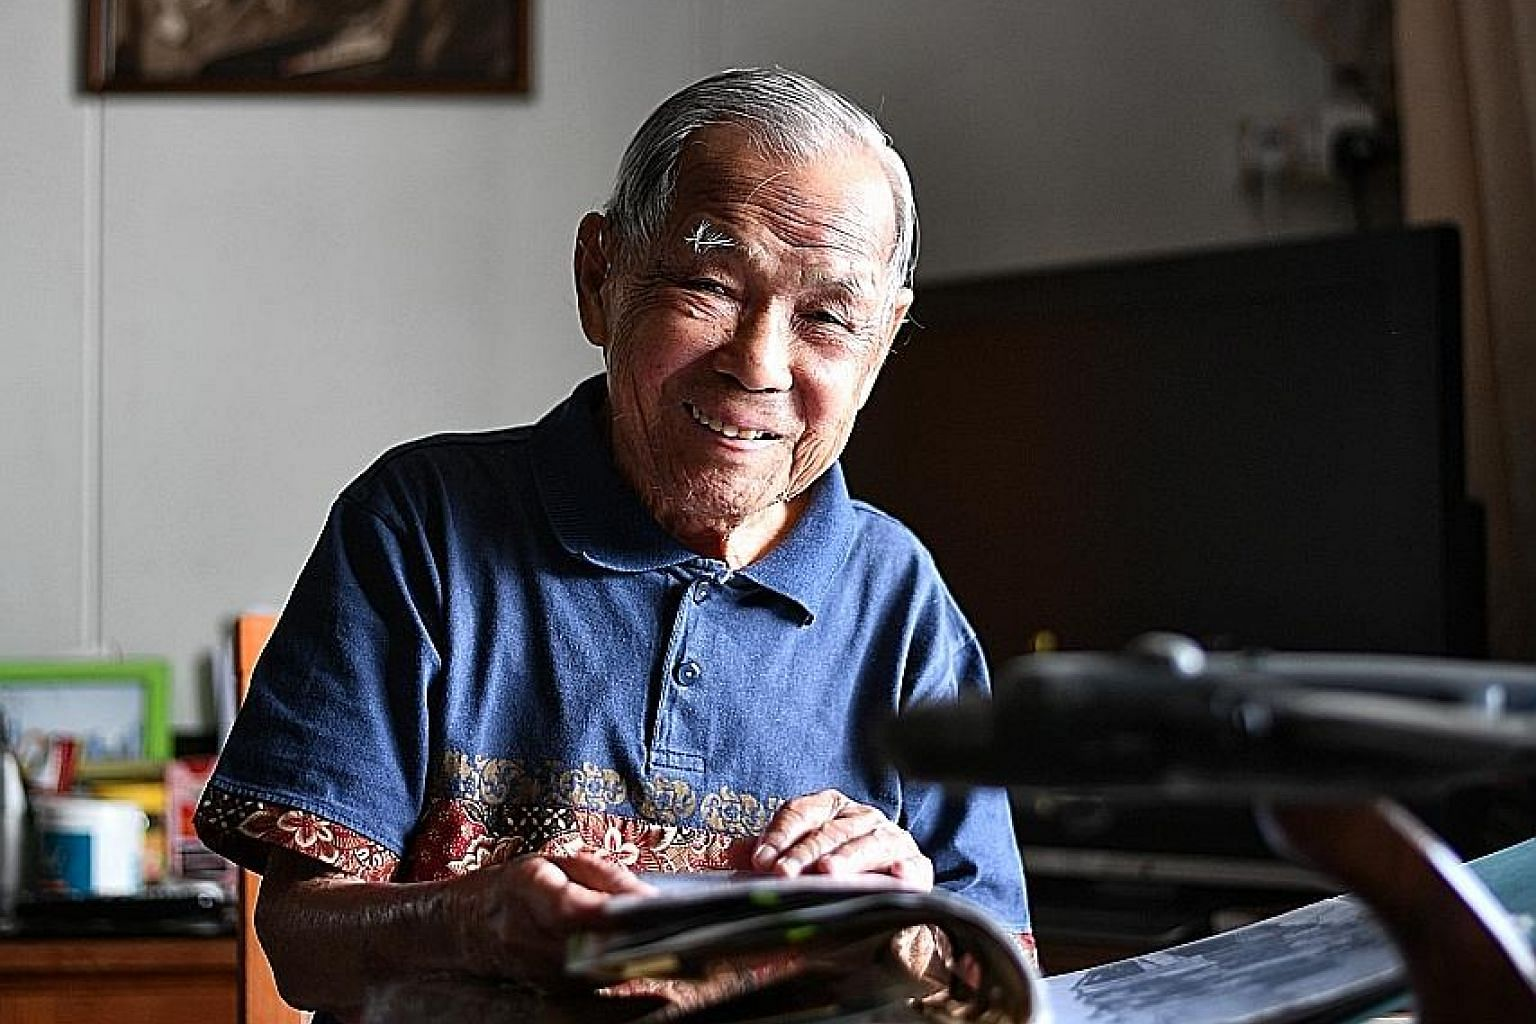 """Captain Ho Weng Toh's first book, Memoirs Of A Flying Tiger, which captures his experiences as part of the legendary """"Flying Tigers"""" squadron that fought the Japanese in World War II, will be published next month."""